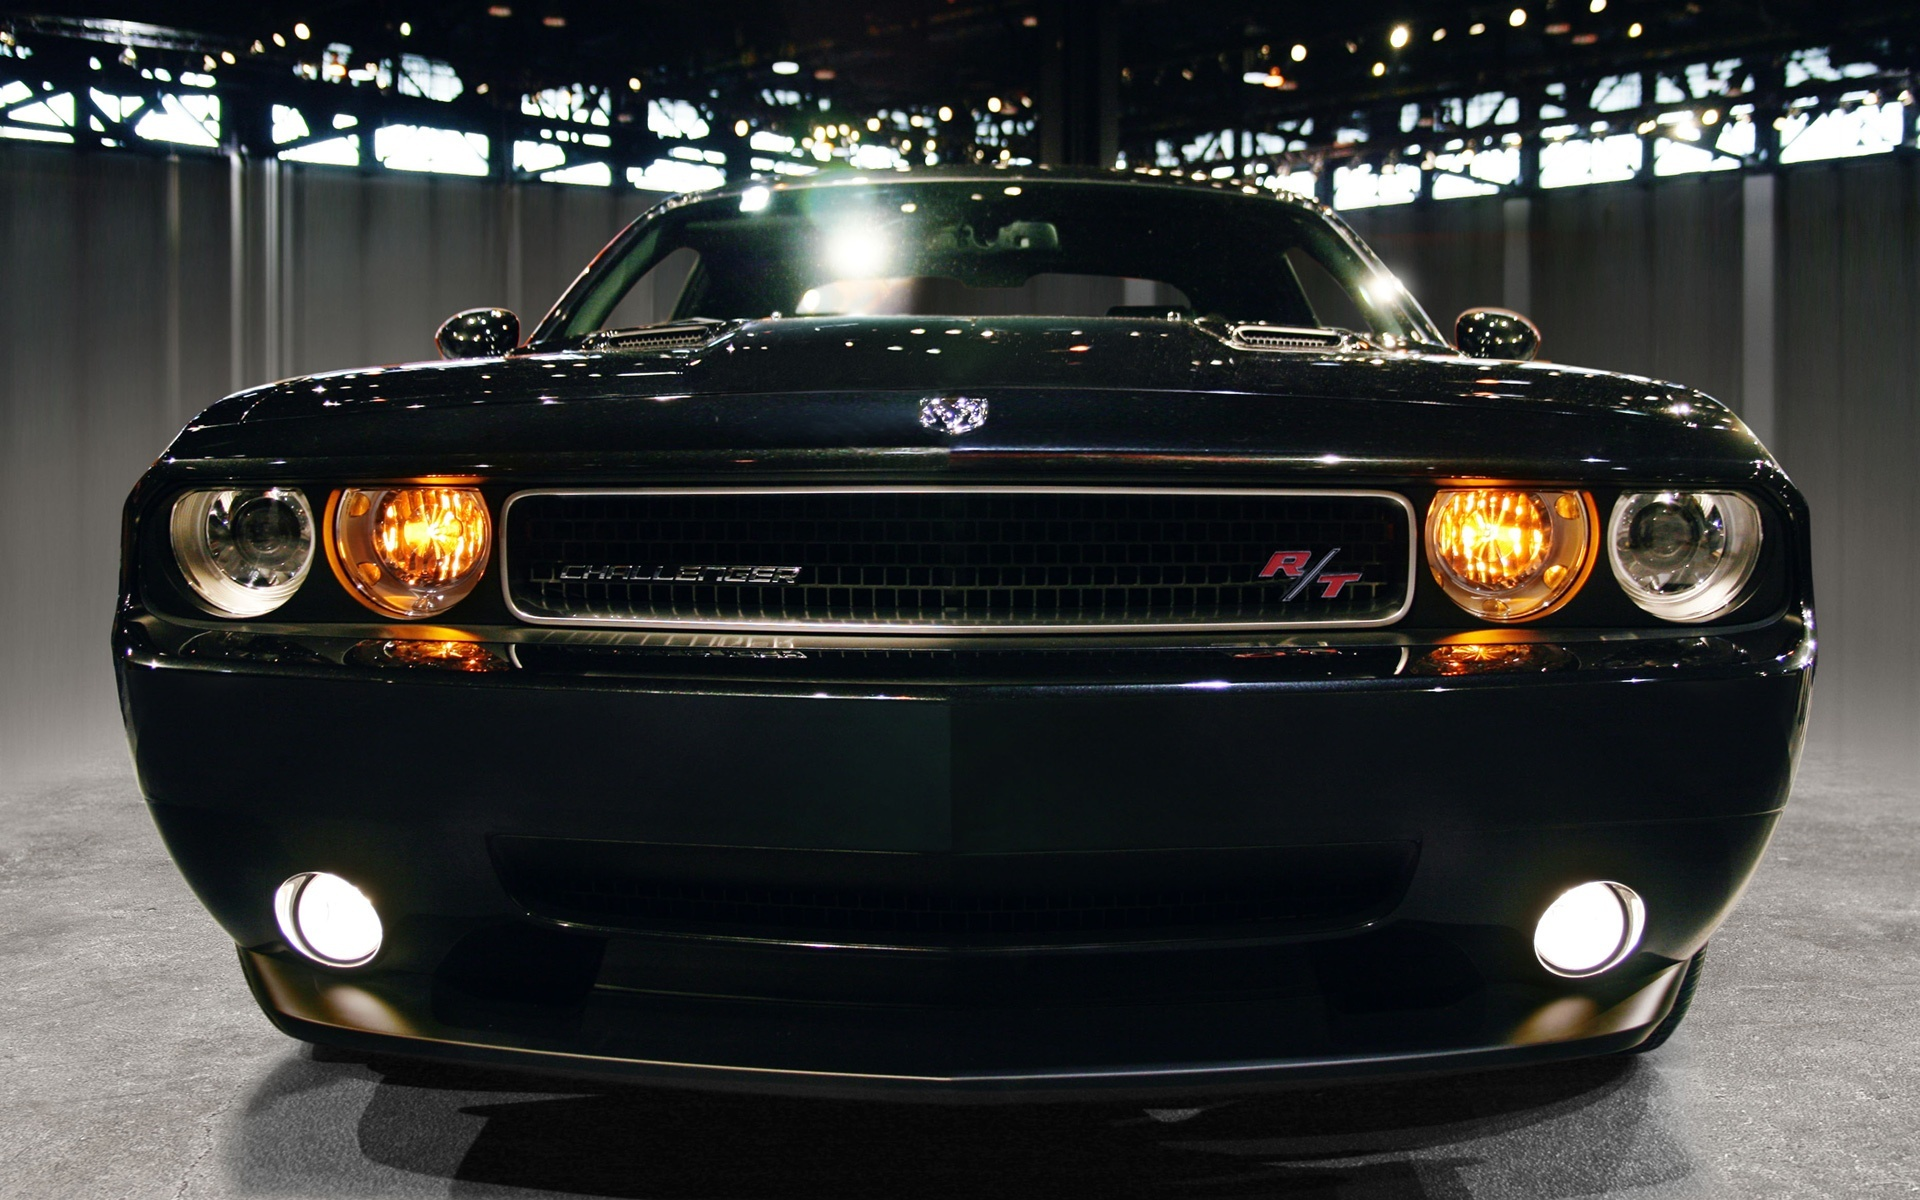 Dodge Challenger RT HD Wallpaper Background Image 1920x1200 1920x1200